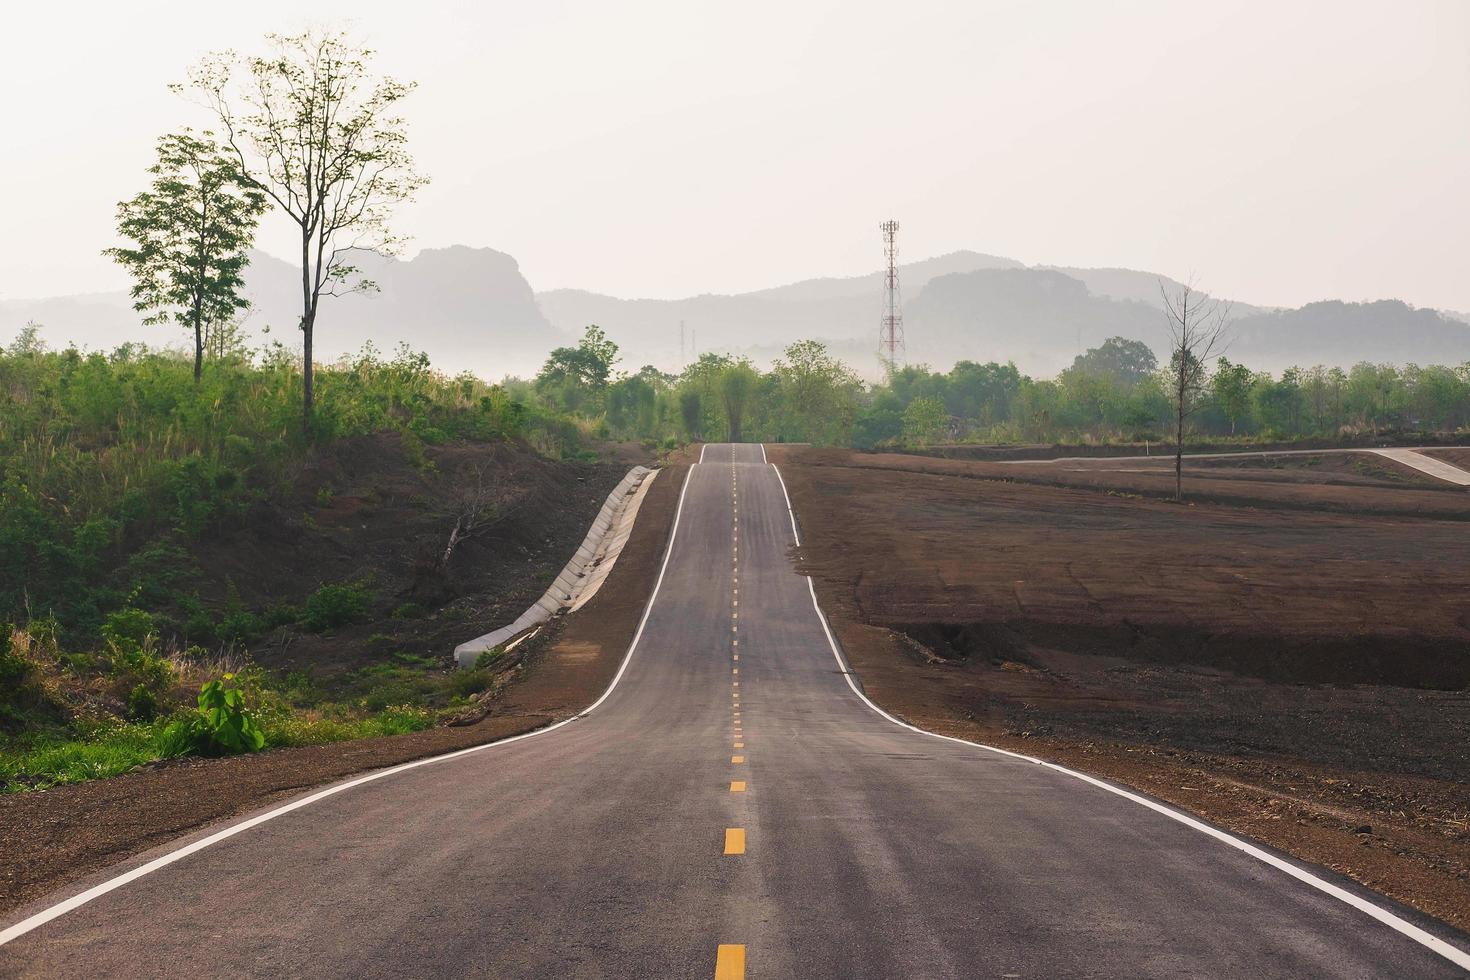 A long straight road leading towards a mountain photo